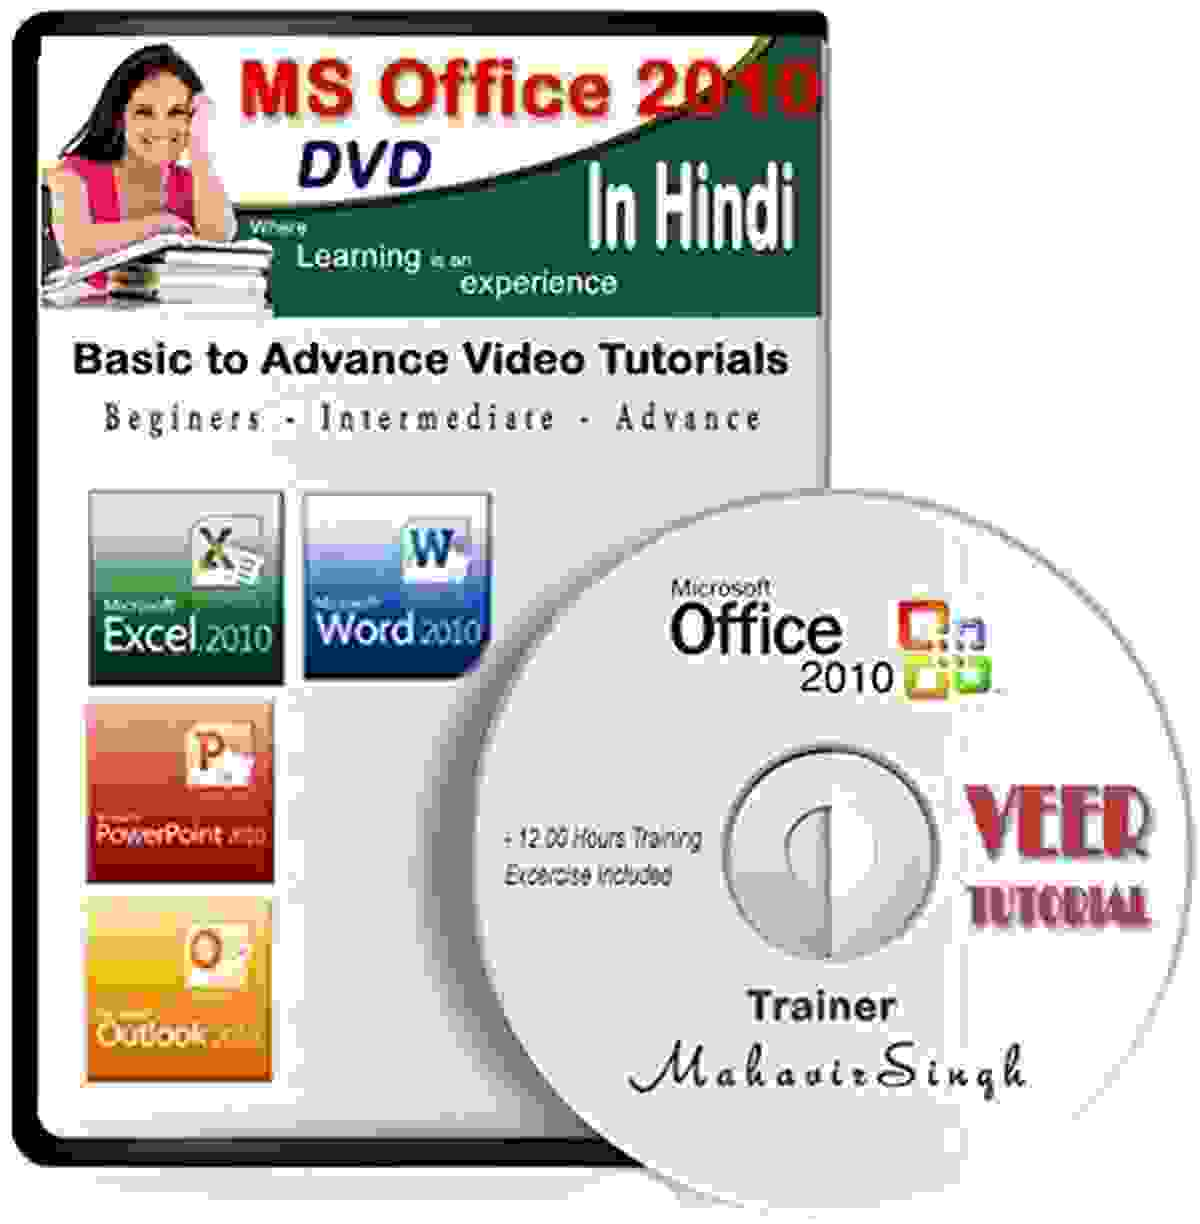 MS Office Tutorial DVD Latest Version Training in Learning Hindi Video